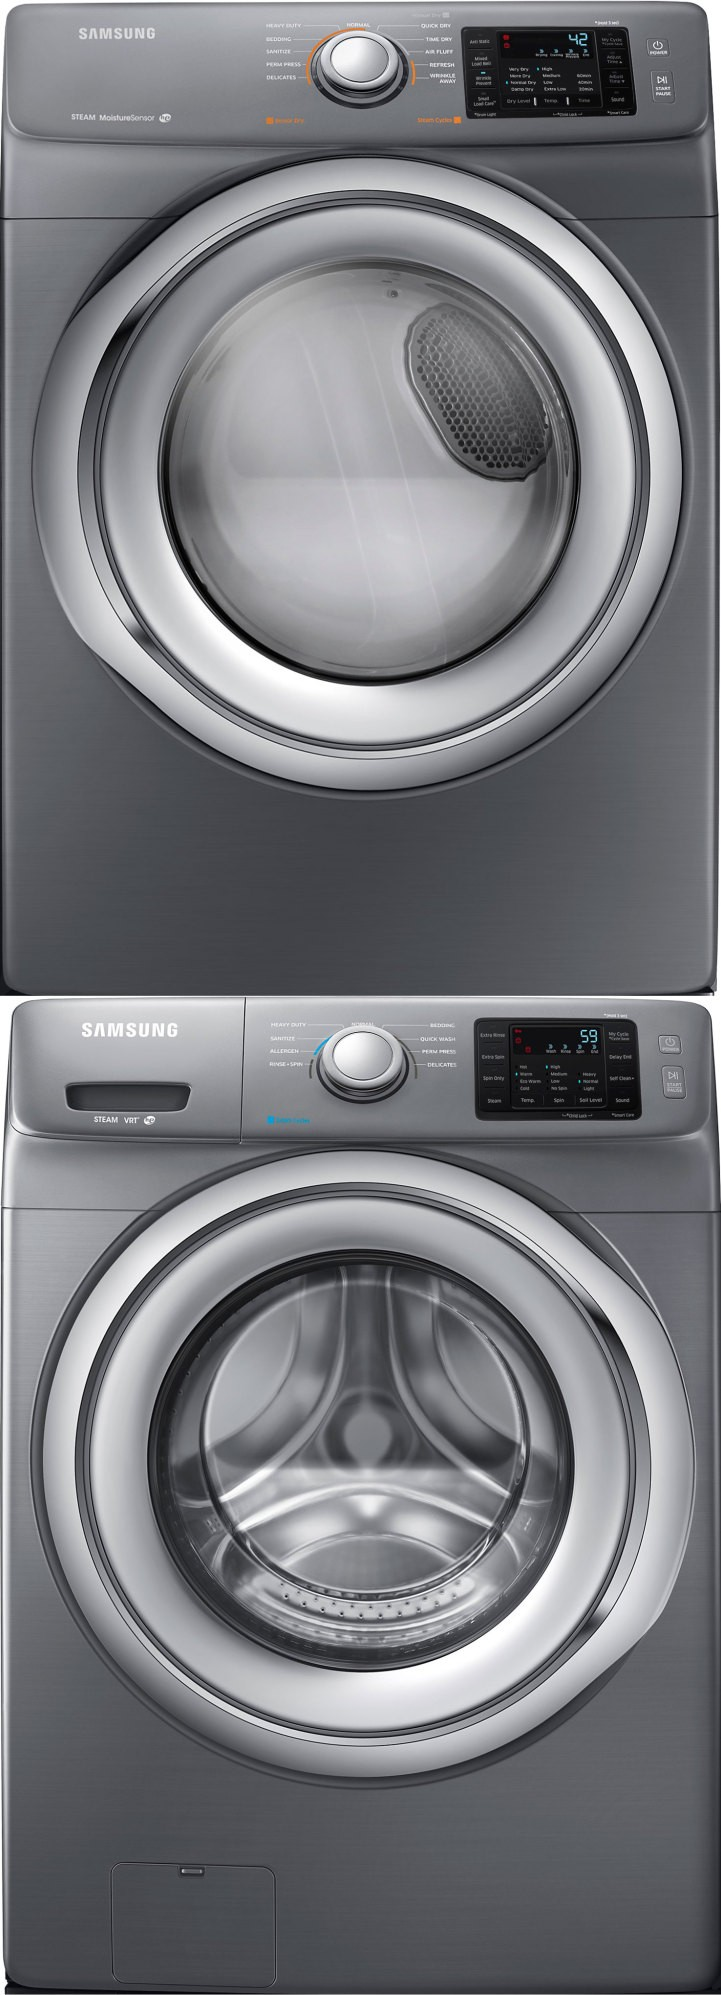 Stacked front load washer and dryer - Samsung Wf42h5200ap Front Load Washer Dv42h5200ep Electric Dryer W Stacking Kit Main